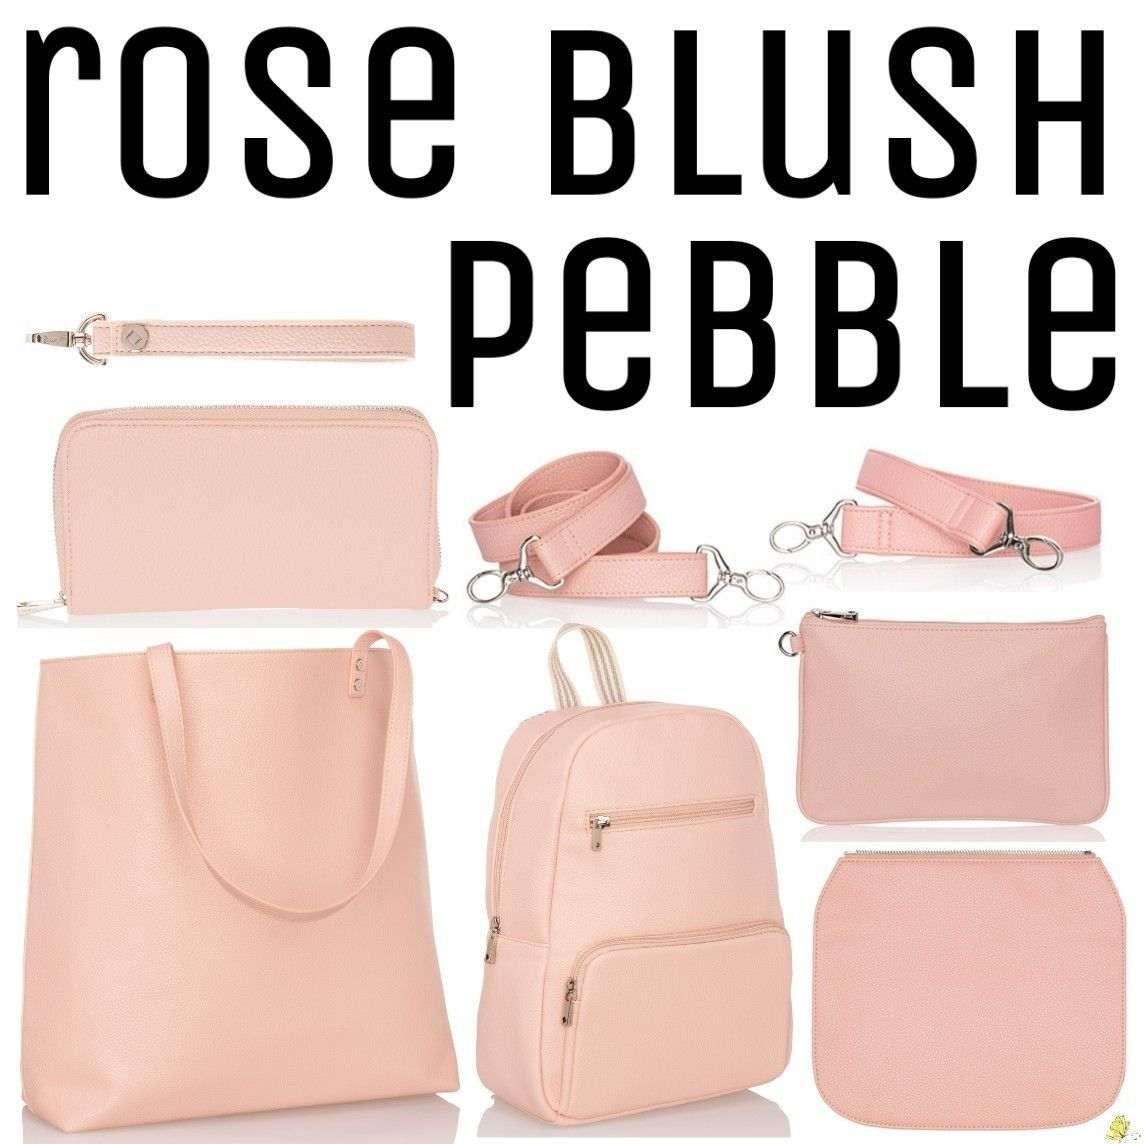 4993aabeae2 Rose Blush Pebble Spring Products! | Thirty-One Gifts - Spring ...